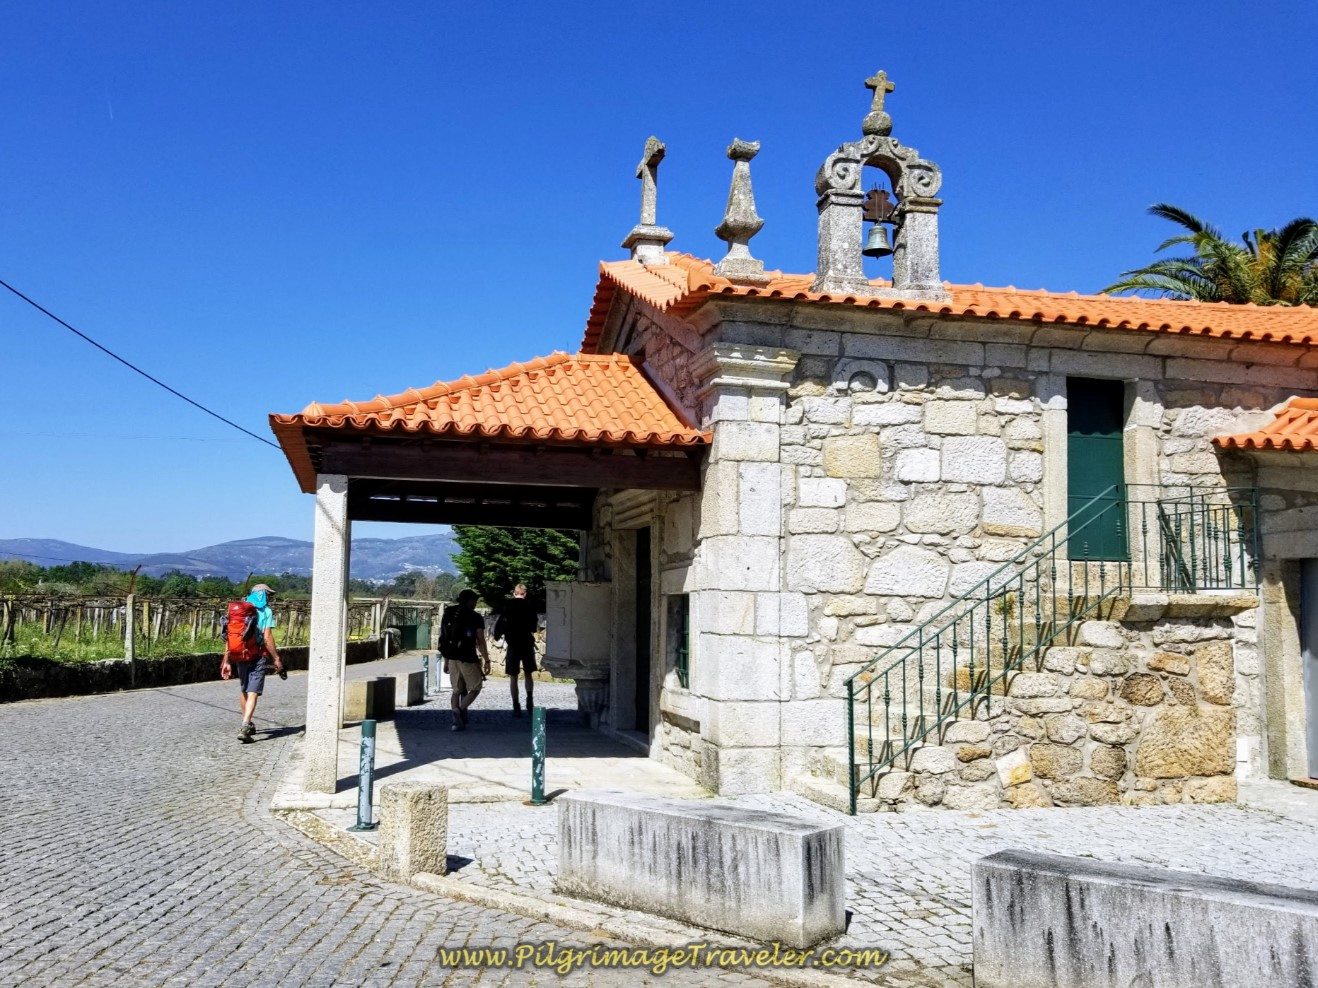 Capela Nossa Senhora Das Neves in Barros on day seventeen on the Central Route of the Portuguese Camino